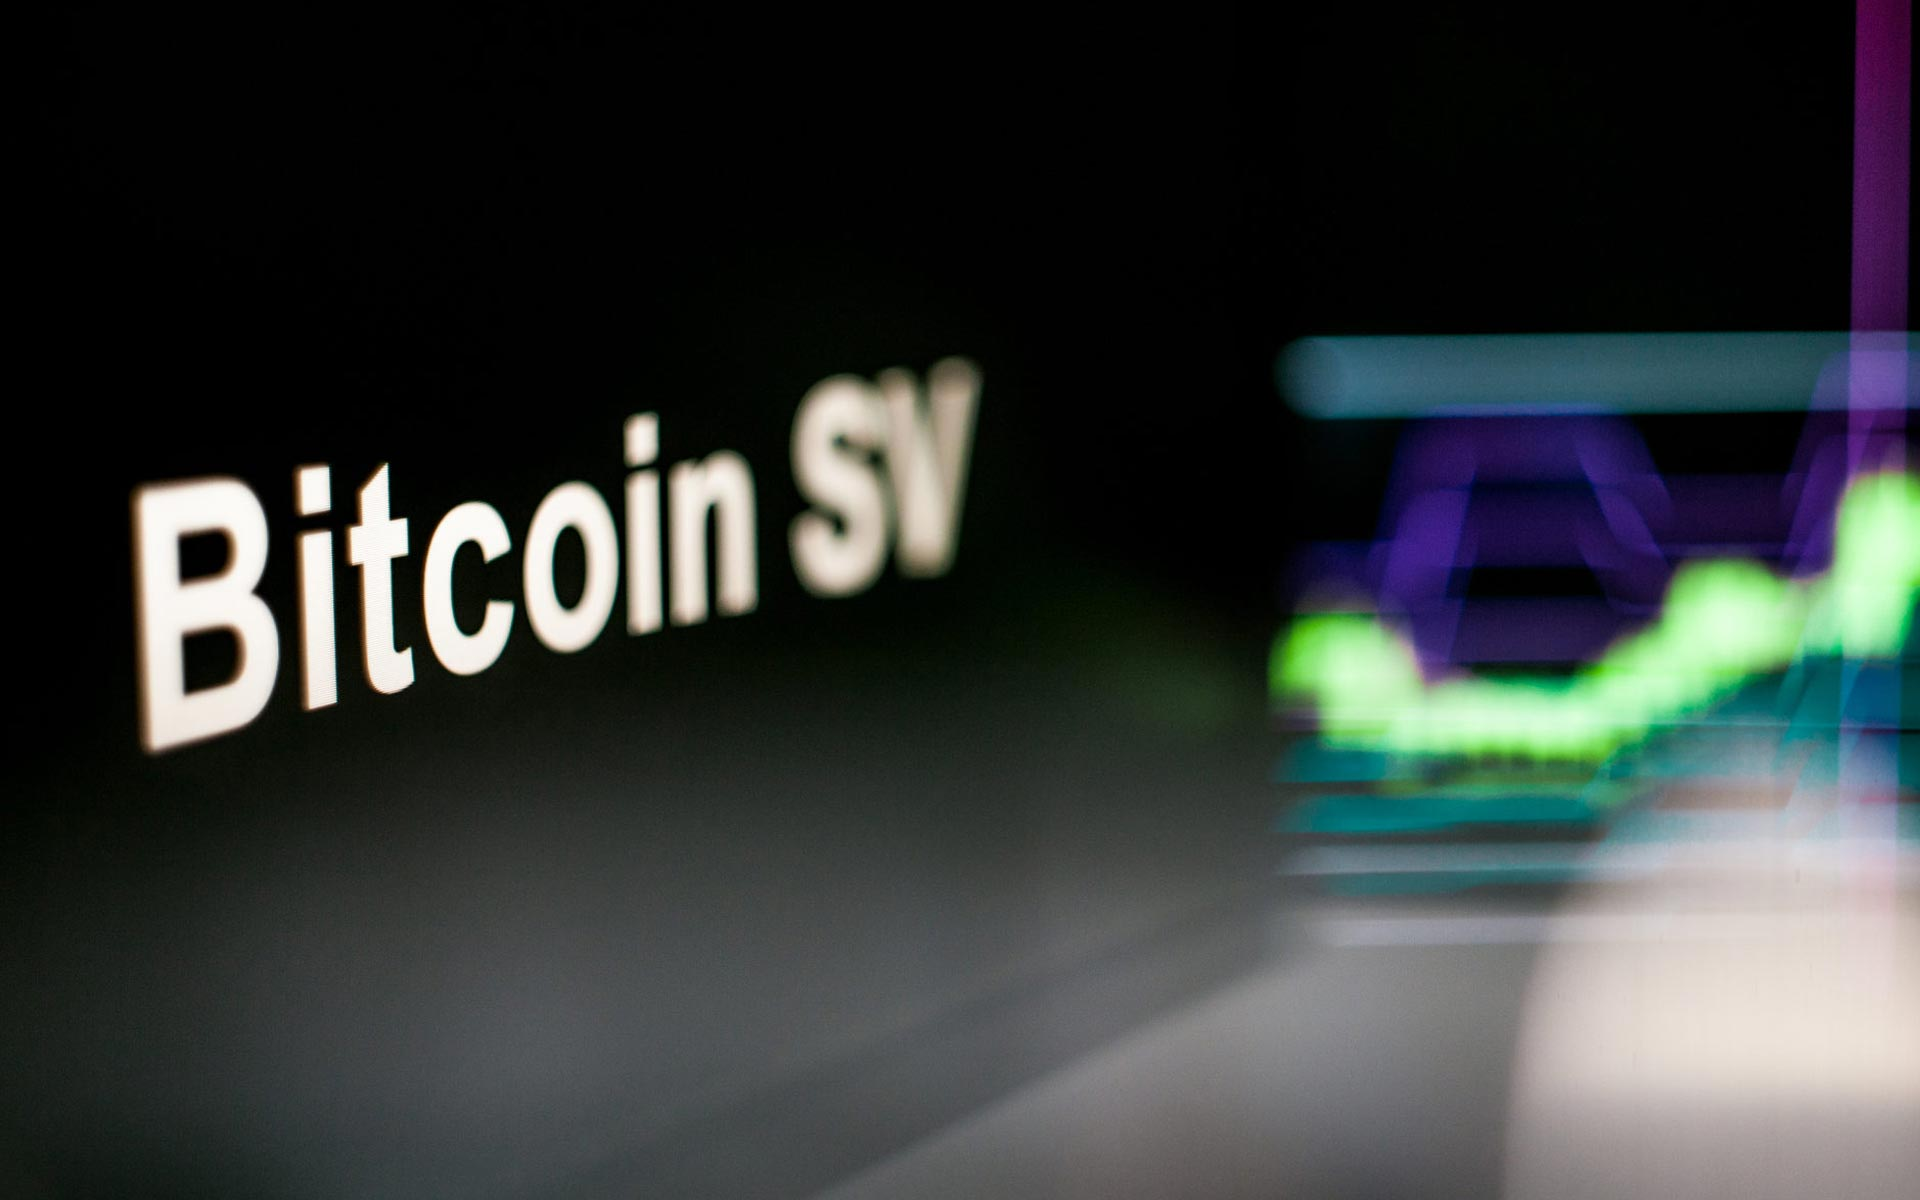 Bitcoin SV: The massively scaled Blockchain to meet developer needs